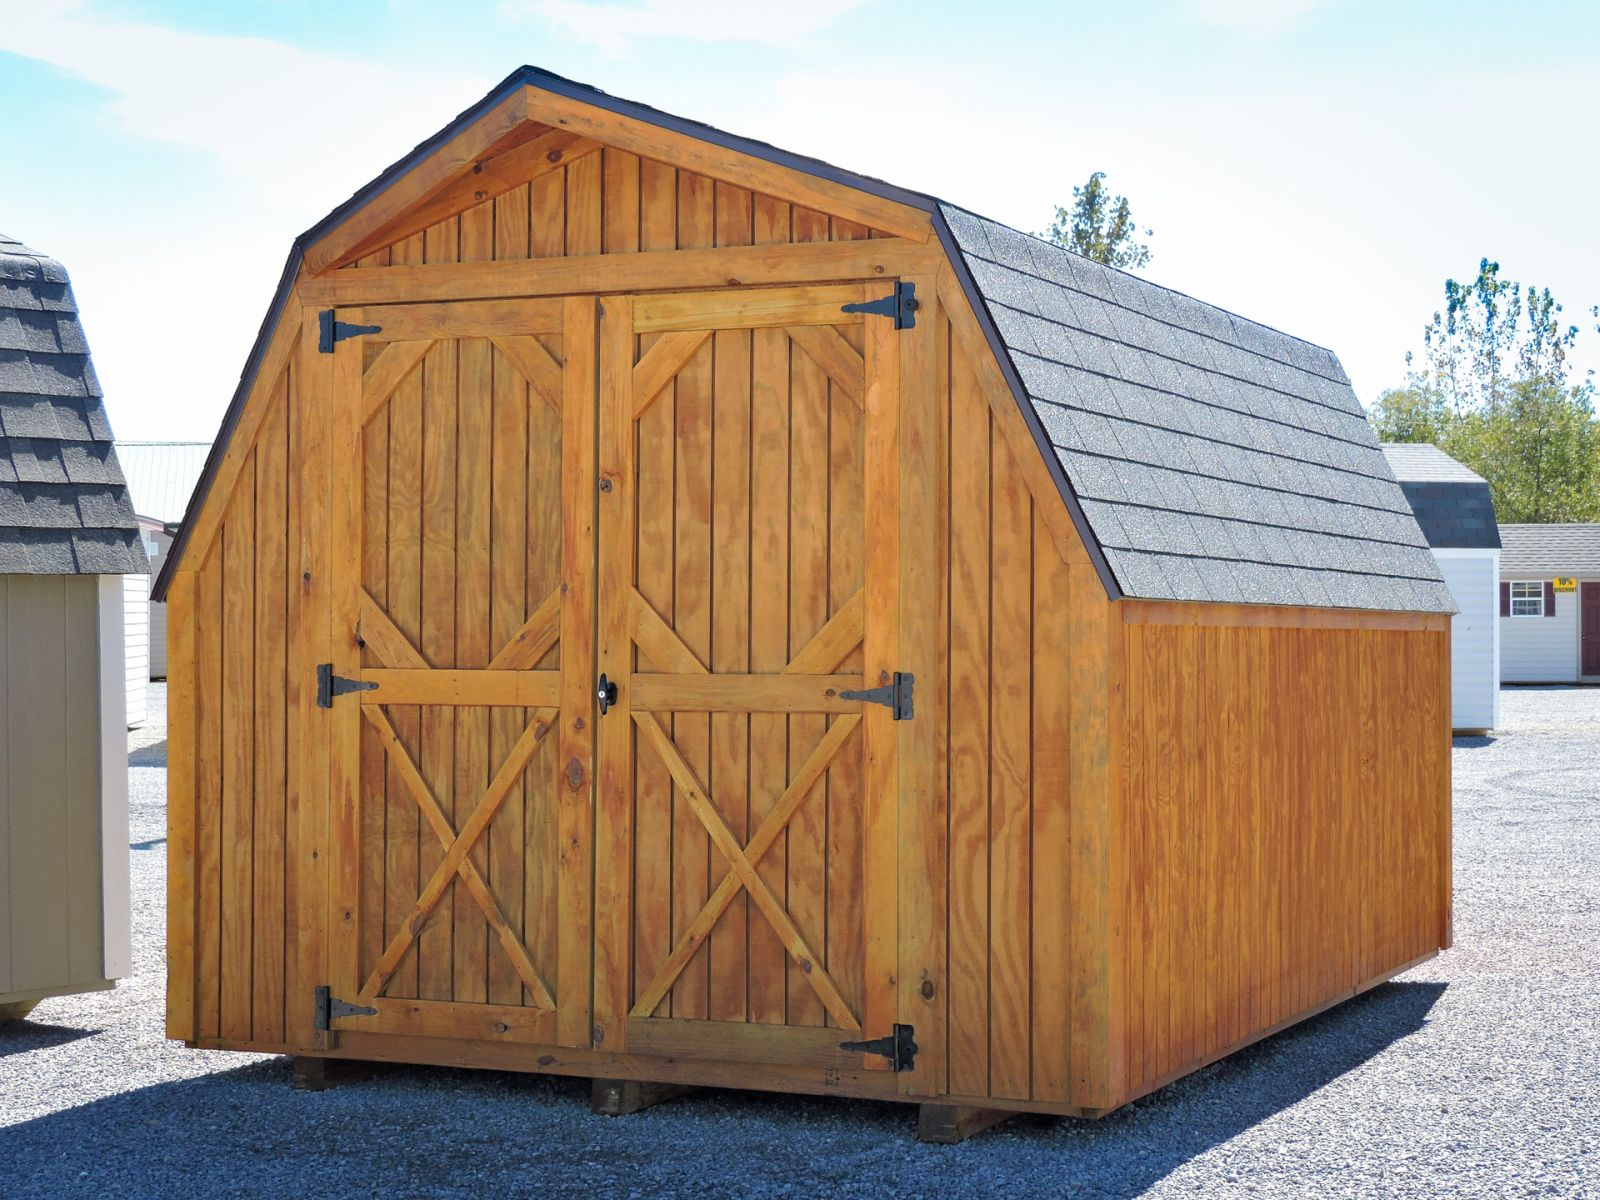 A shed for sale in Greensburg, KY